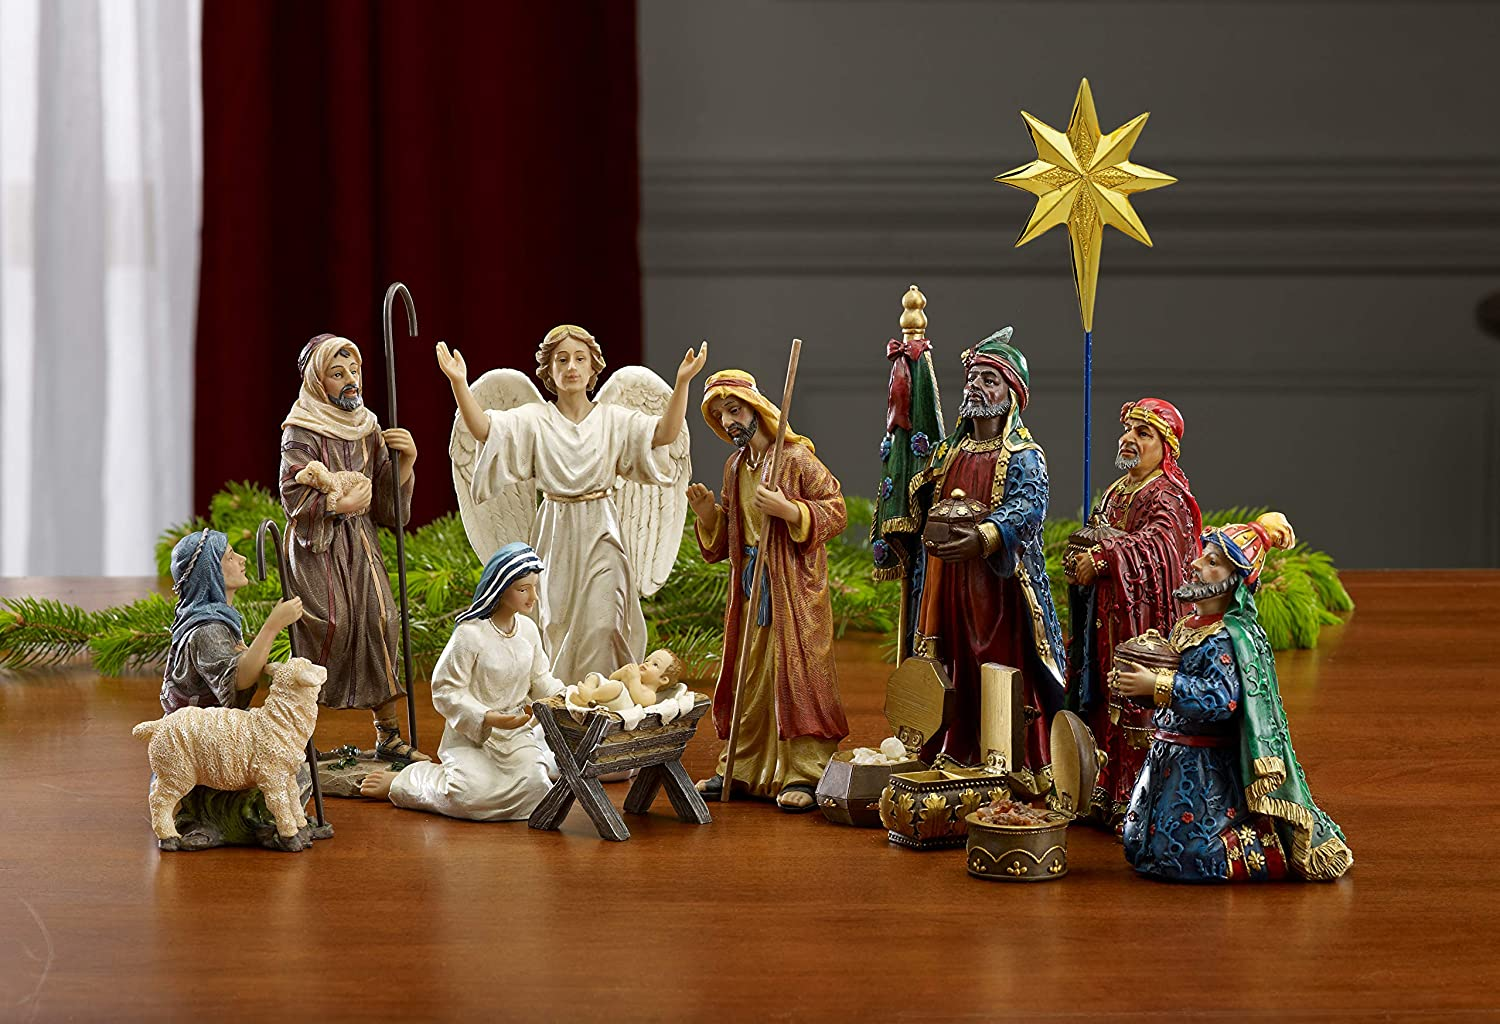 Amazon Com Set Of 11 Nativity Figurines With Real Gold Frankincense And Myrrh 7 Inch Scale Home Kitchen